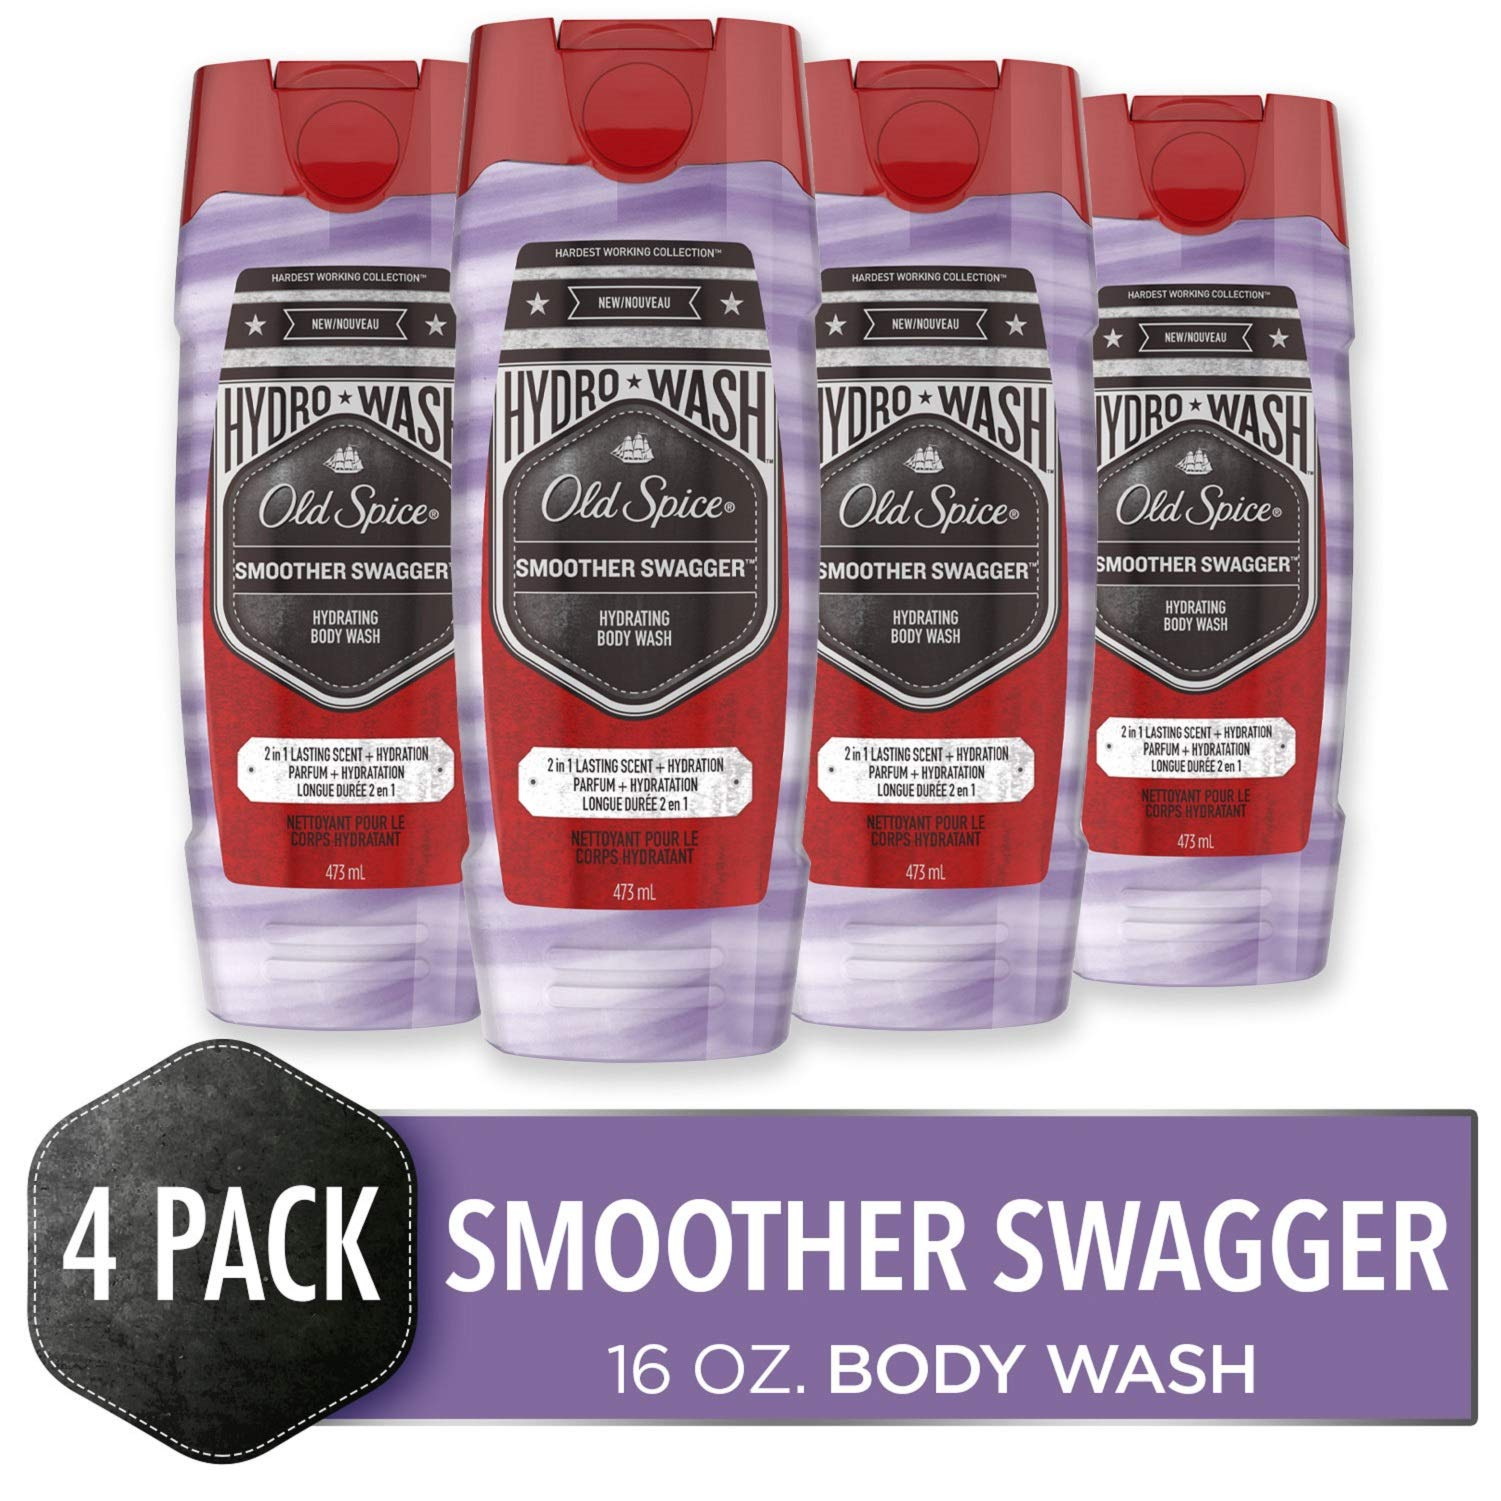 Old Spice Hydro Body Wash for Men, Smoother Swagger Scent, Hardest Working Collection, 16 Ounce (Pack of 4) by Old Spice